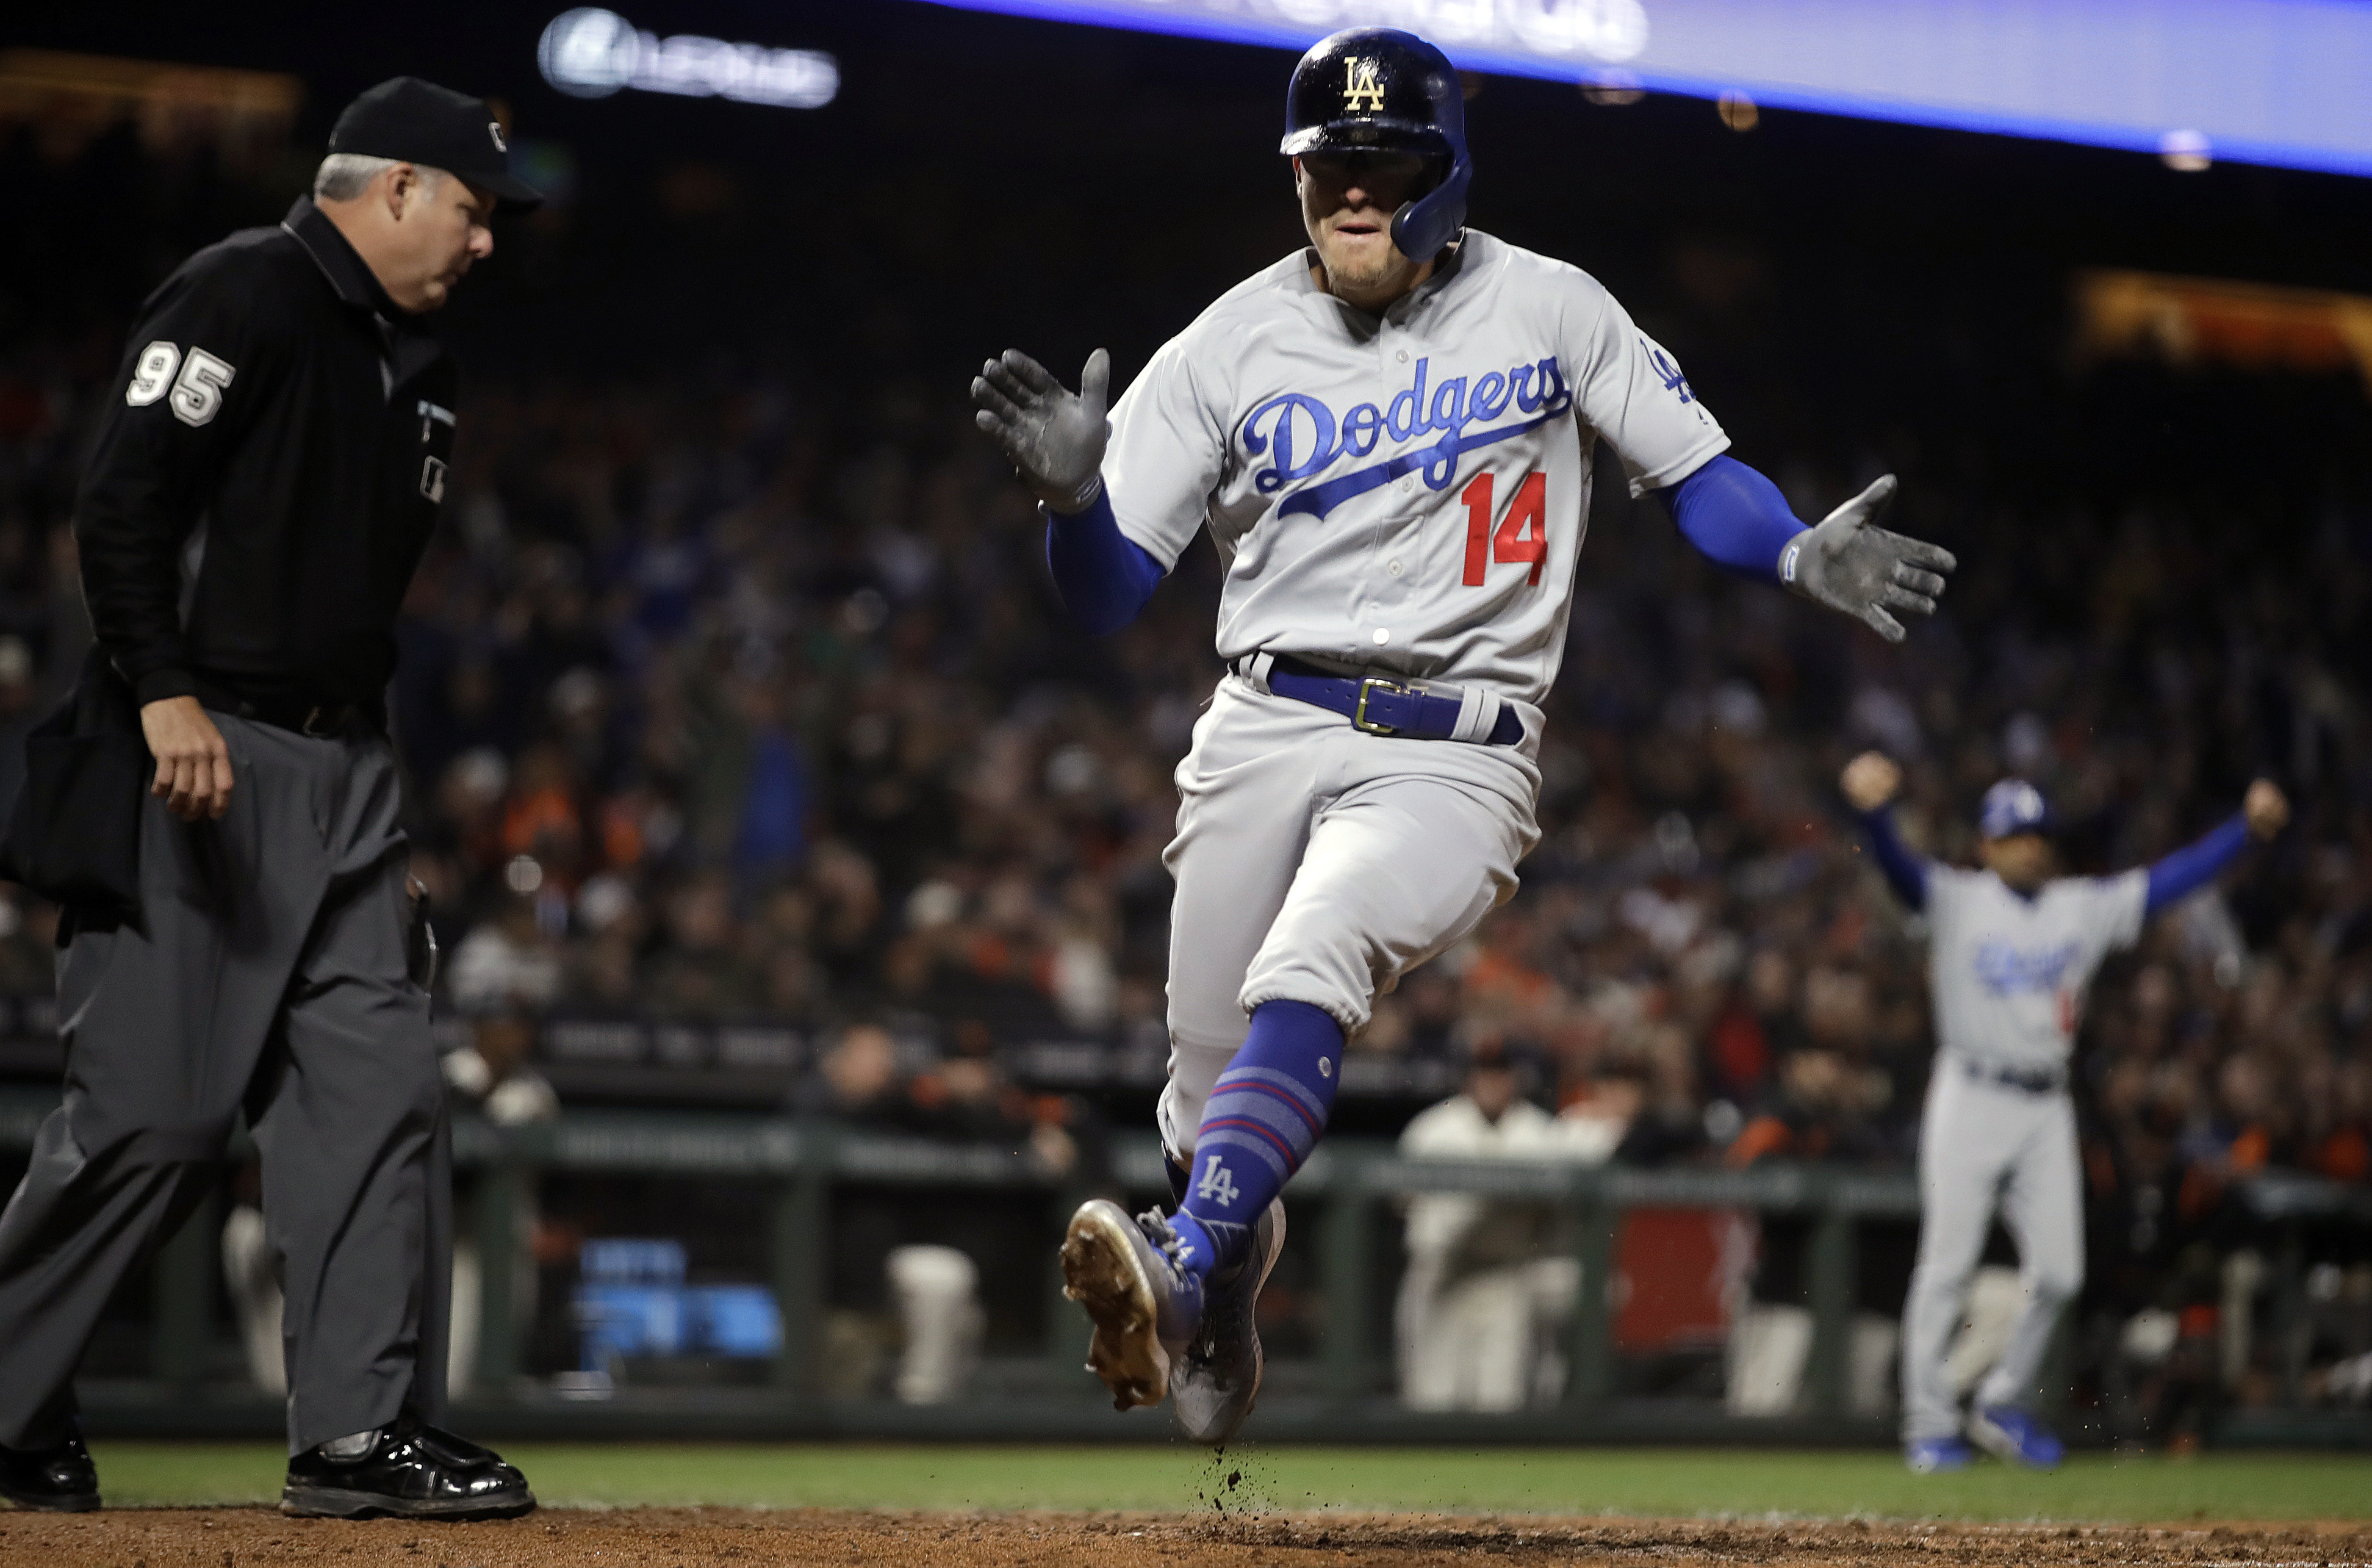 Posey's hit sends Giants to 2-1 win over Dodgers